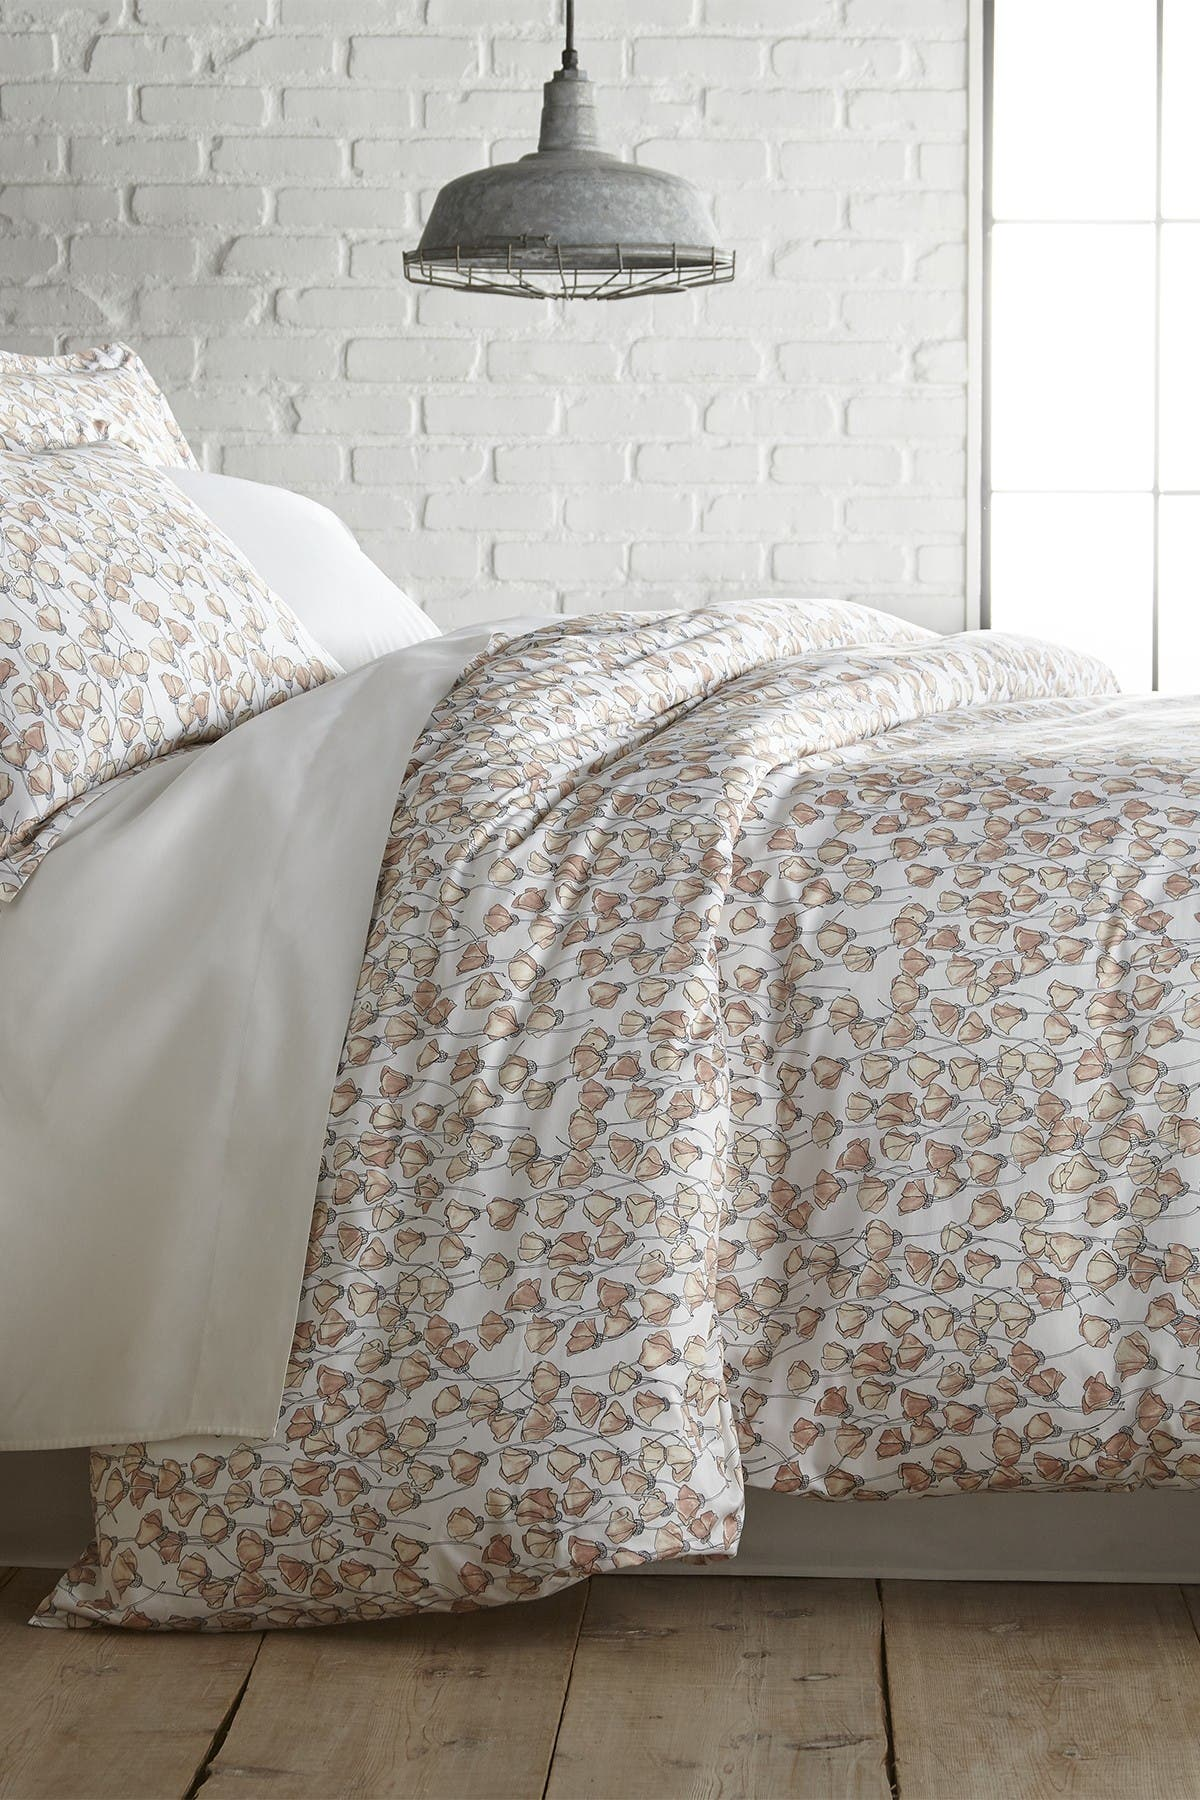 Image of SOUTHSHORE FINE LINENS King/California King Premium Collection Ultra-Soft 300 Thread-Count Cotton Duvet Cover Sets - Forevermore Blush